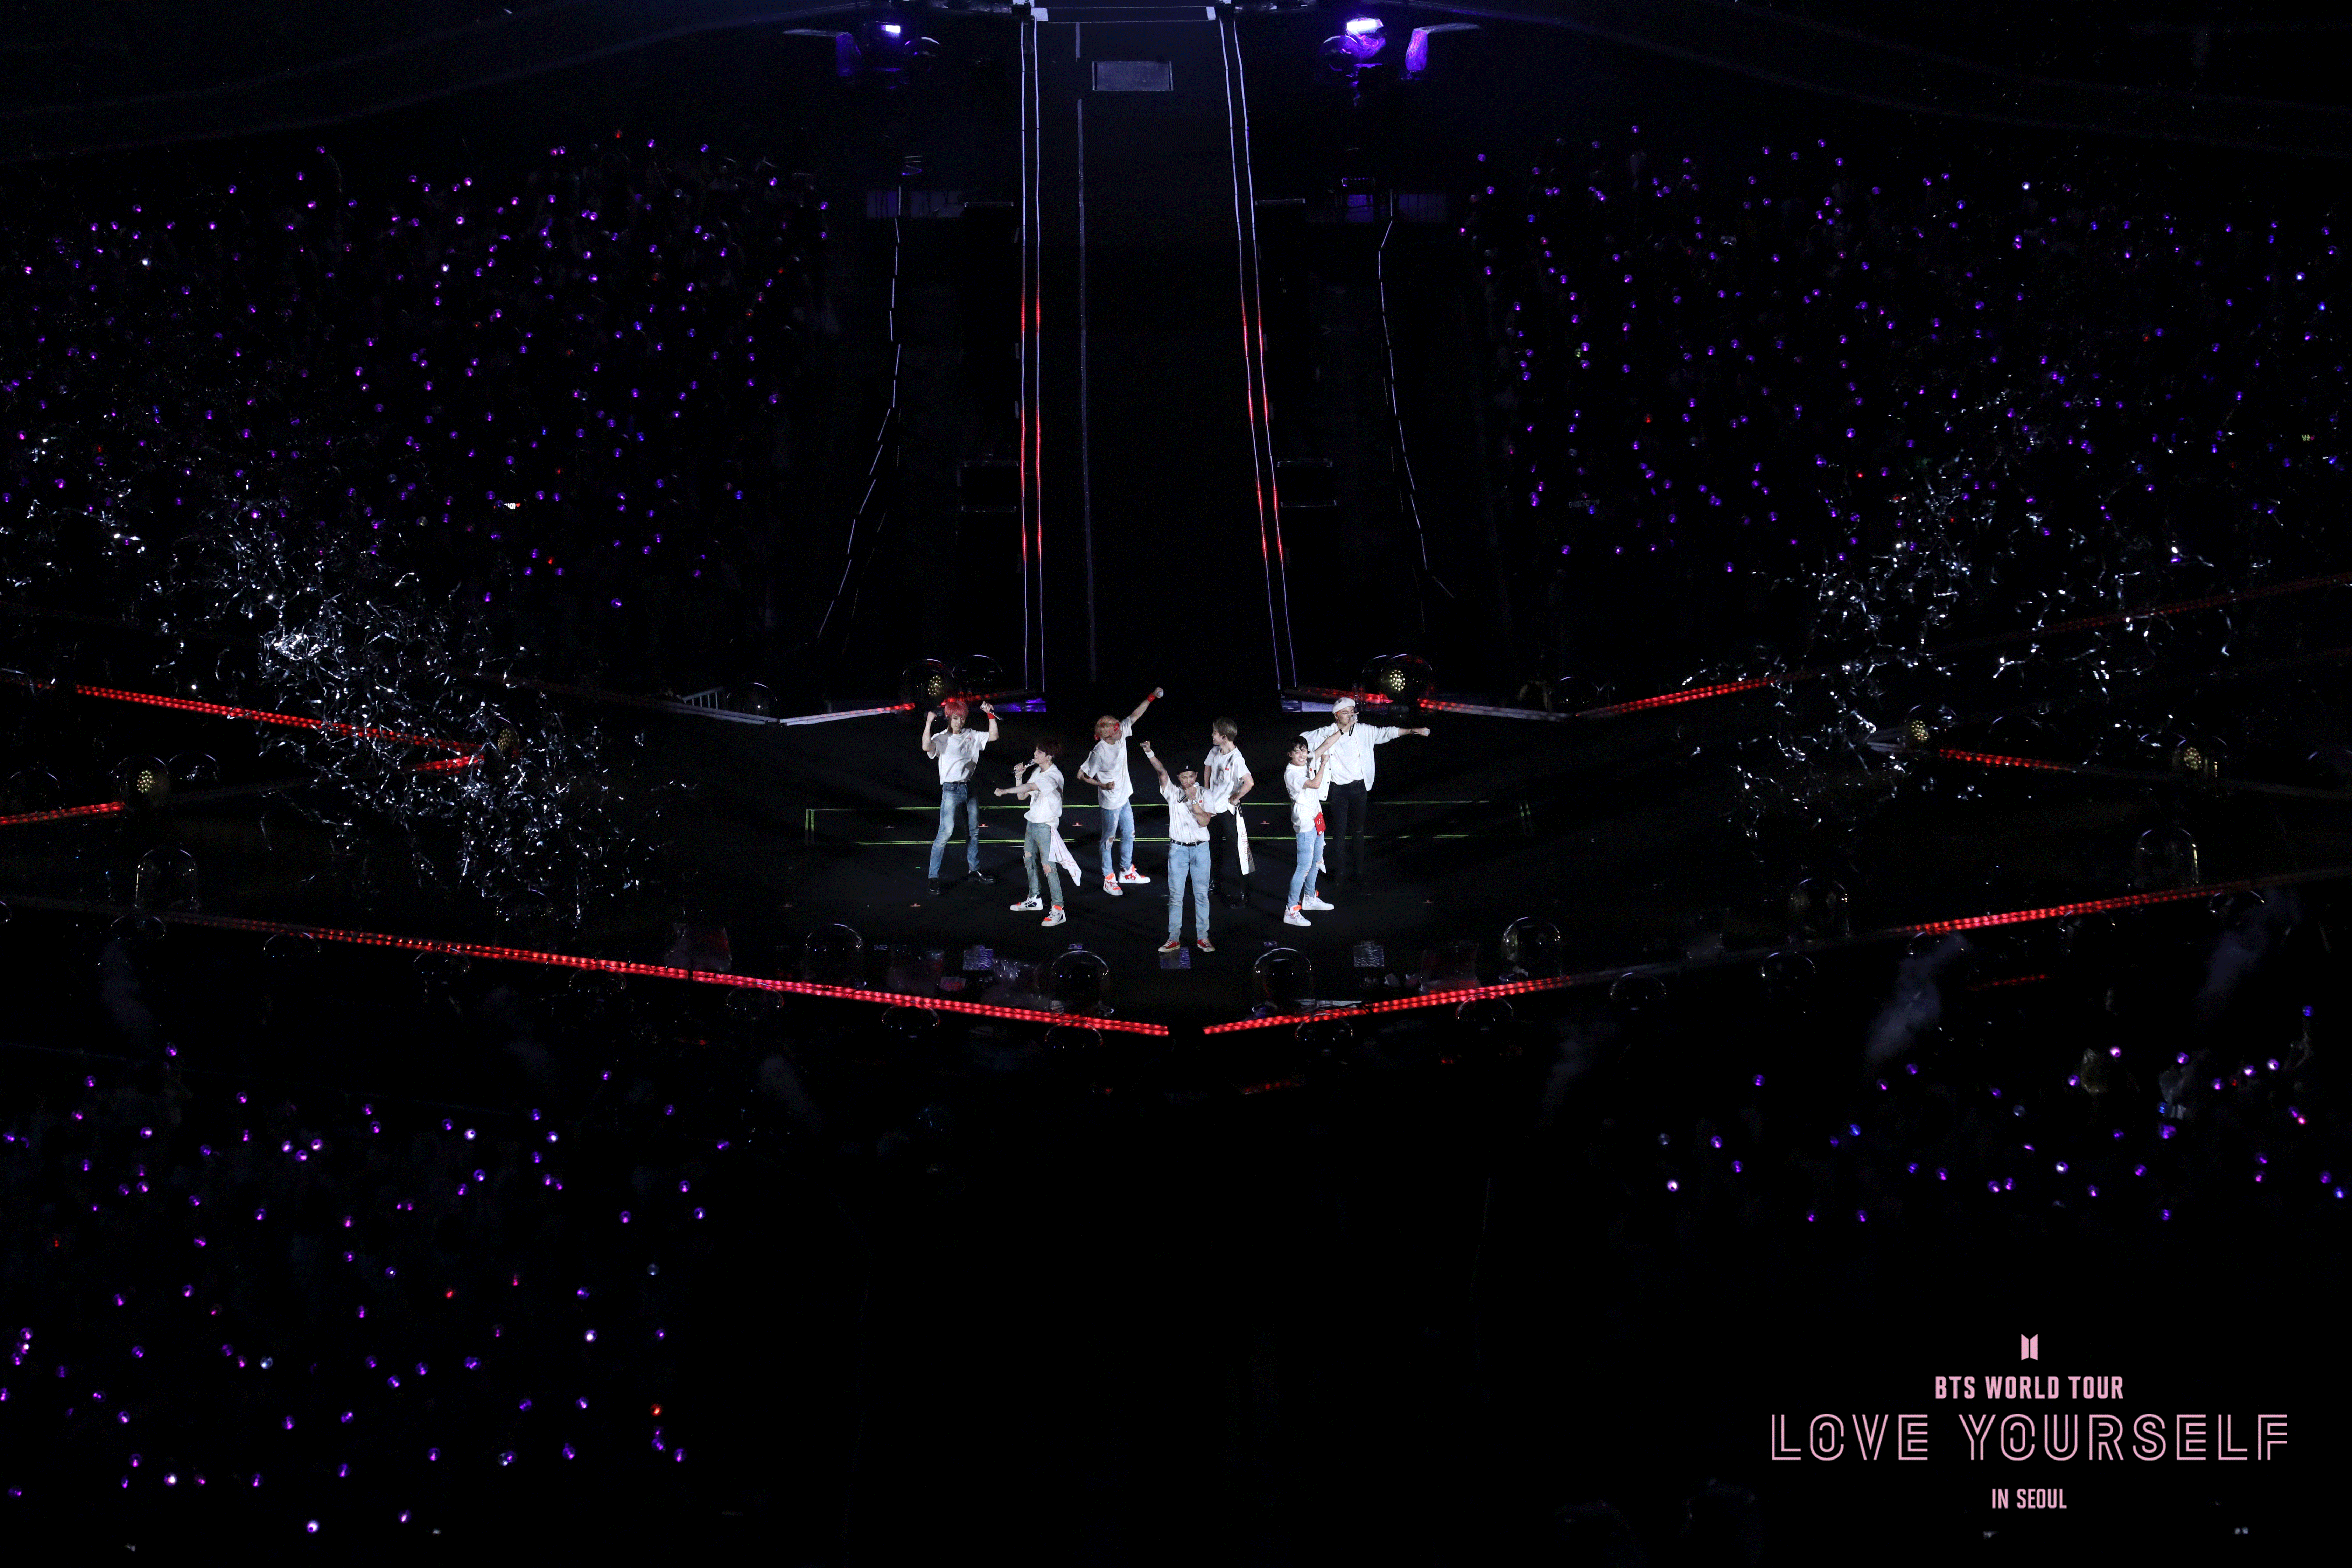 BTS LOVE YOURSELF IN SEOUL - photo 2